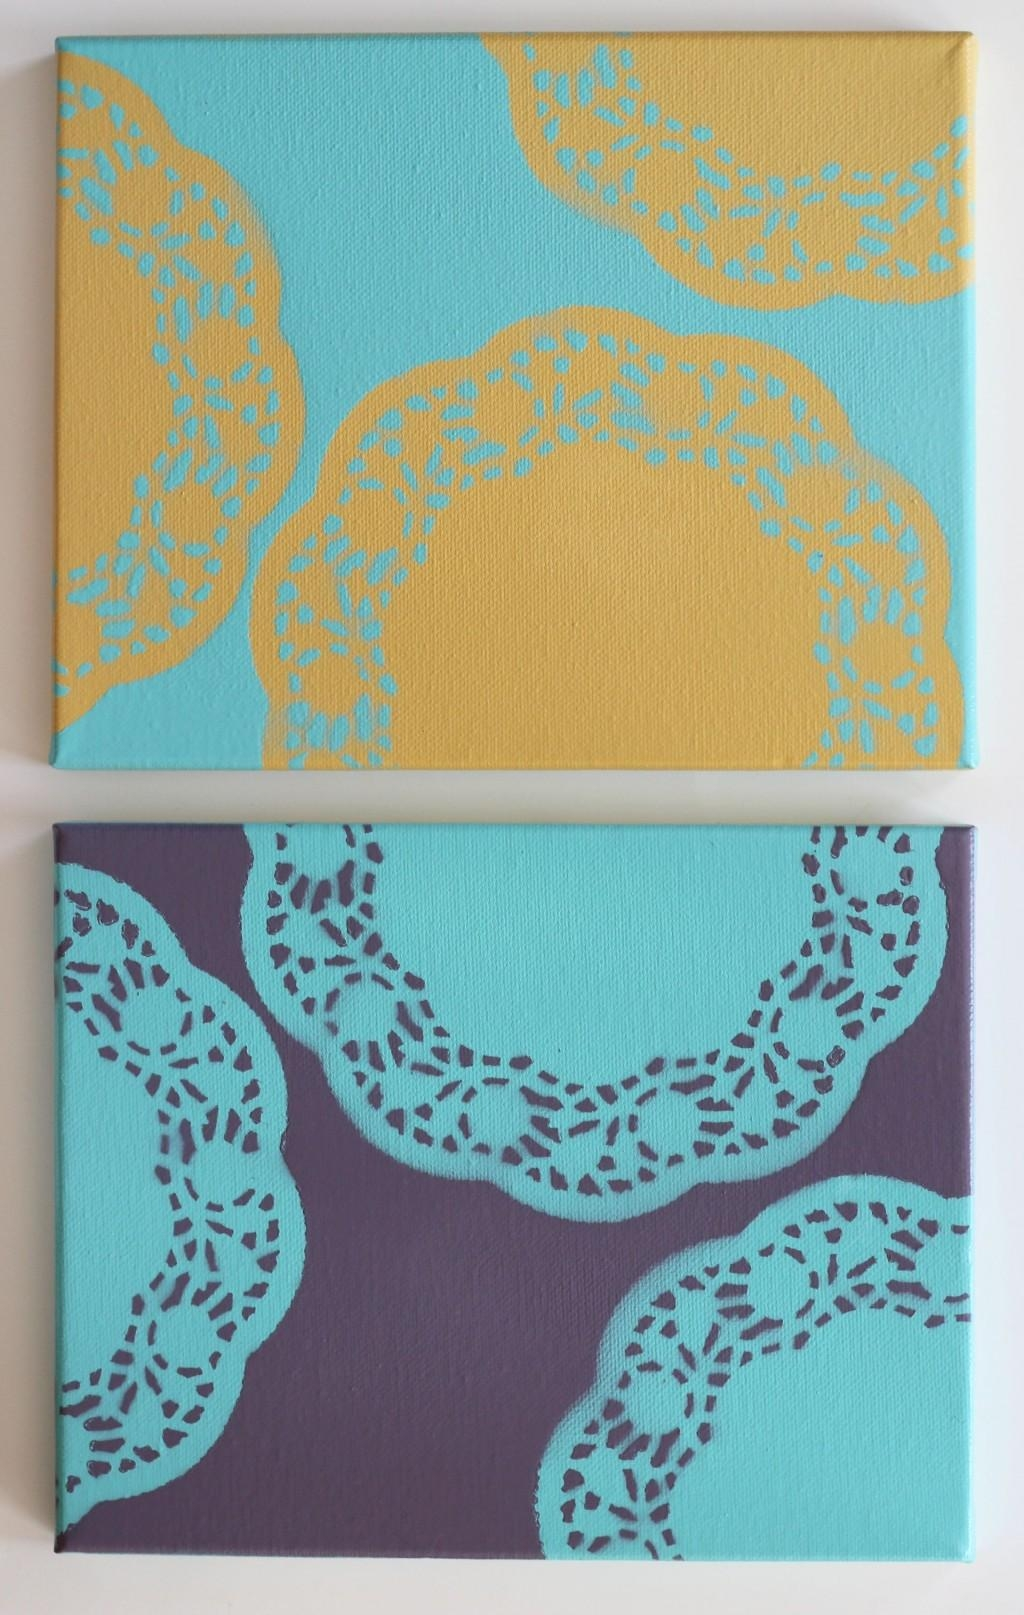 Howling Doilies As Wells As Easy Diy Wall Art Along With Easy Diy Pertaining To Small Canvas Wall Art (View 9 of 20)